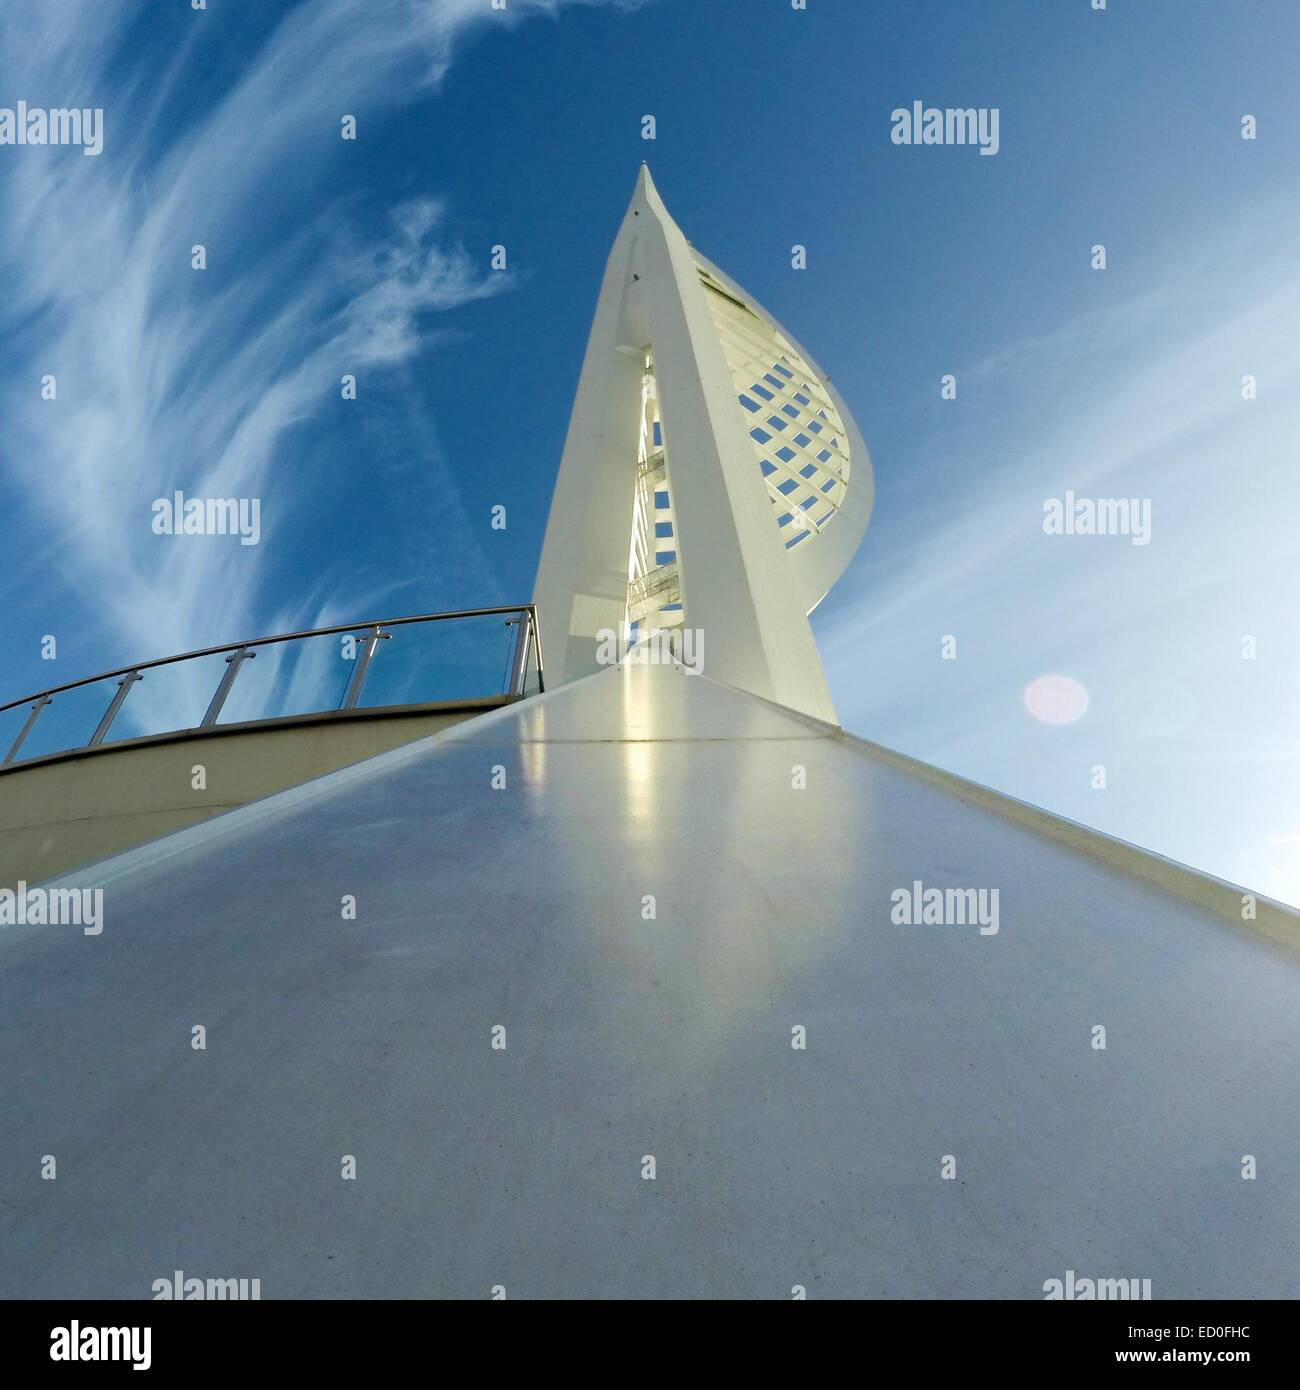 United Kingdom, England, Hampshire, Portsmouth, Upward view of Spinnaker Tower against sky - Stock Image